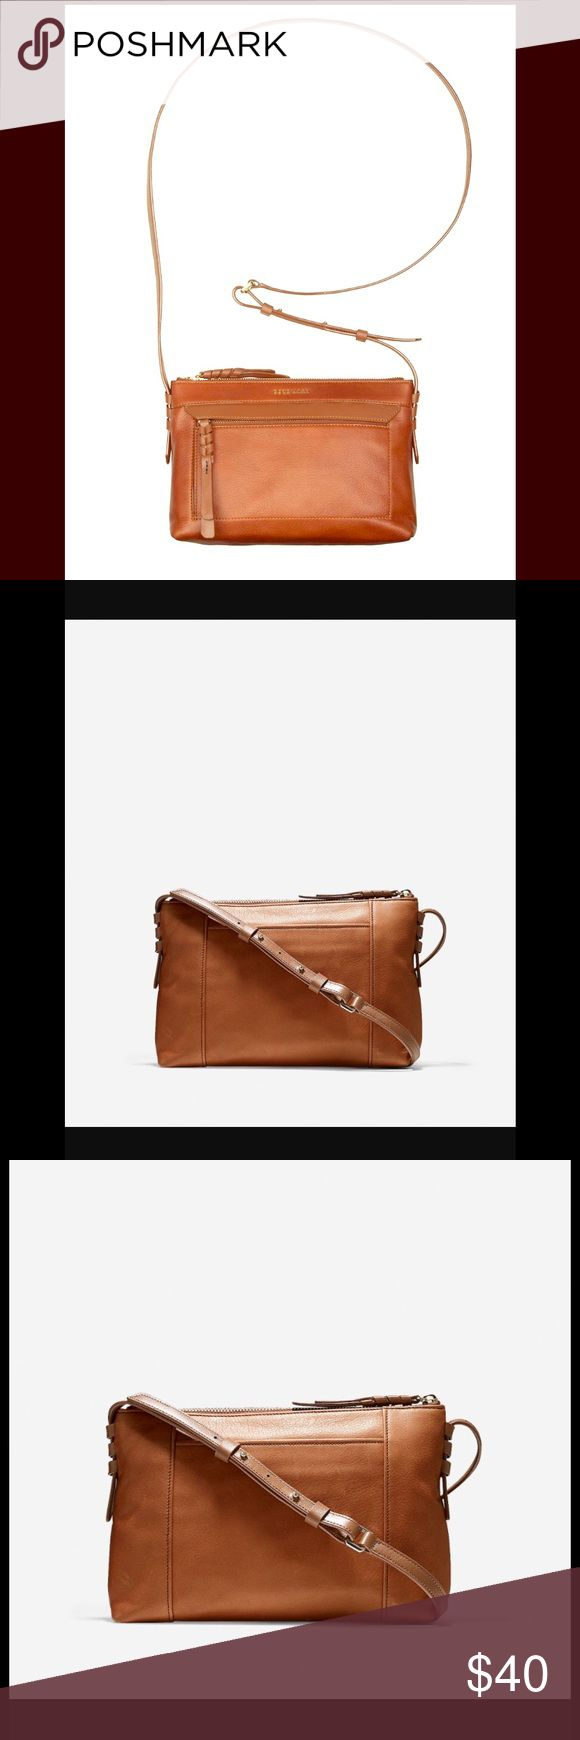 """Cole Hahn Felicity Brown Leather Crossbody Bag Top Zip Crossbody Leather. Rich brown tan color. Gold Leather hardware. 10.5""""x6.75""""x3"""" Cole Haan Bags Crossbody Bags"""